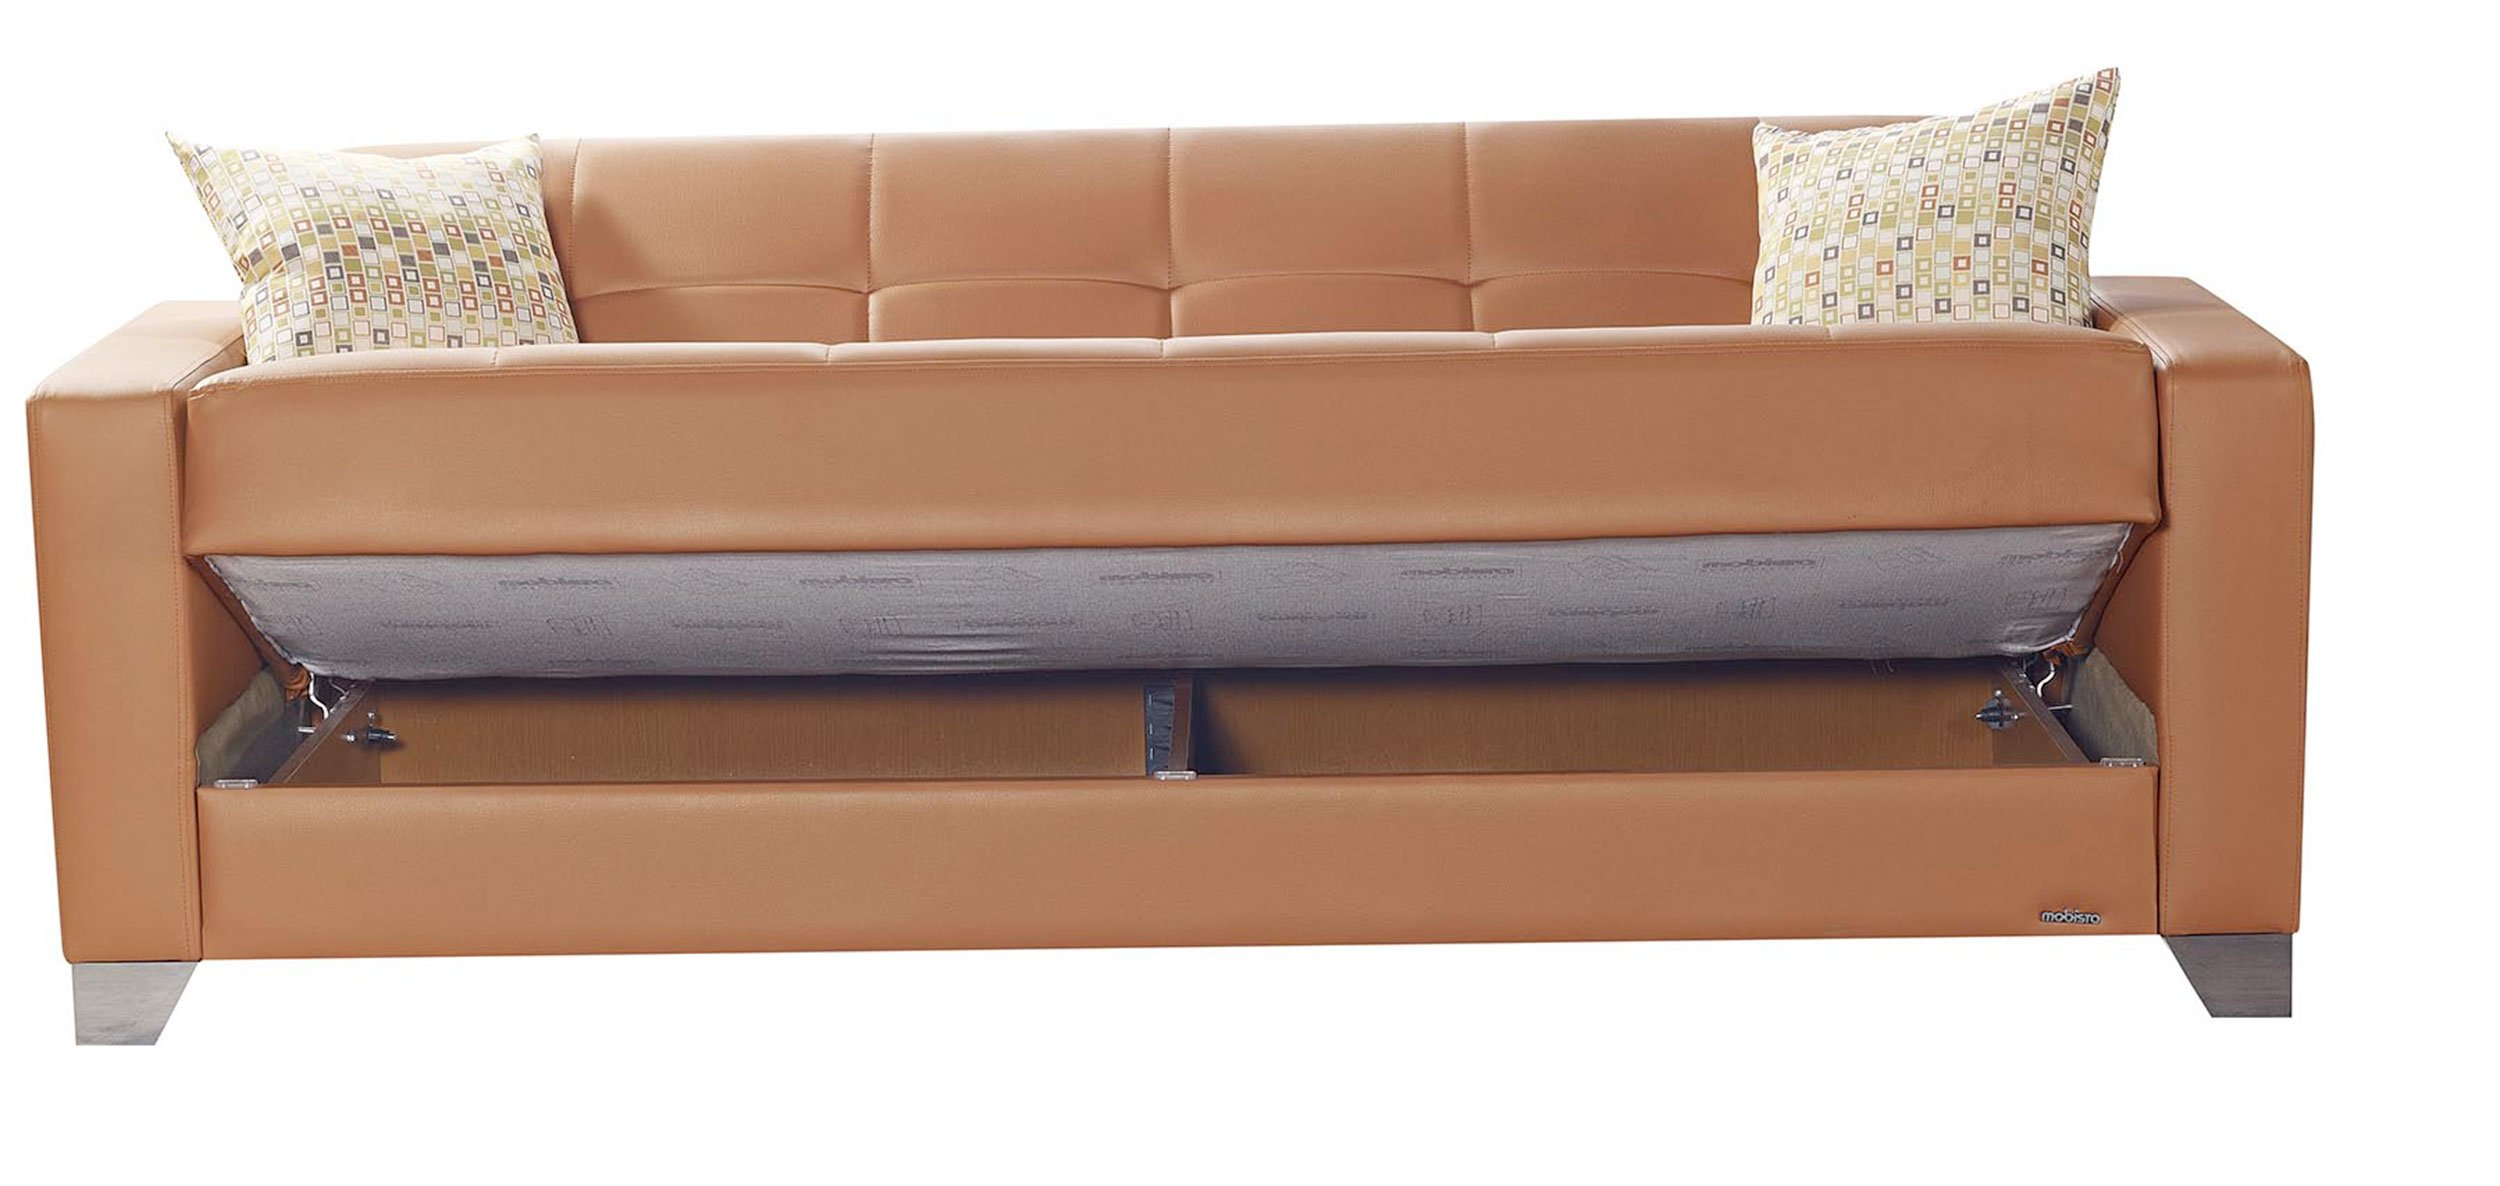 viva italia prestige orange leatherette sofa bed by mobista